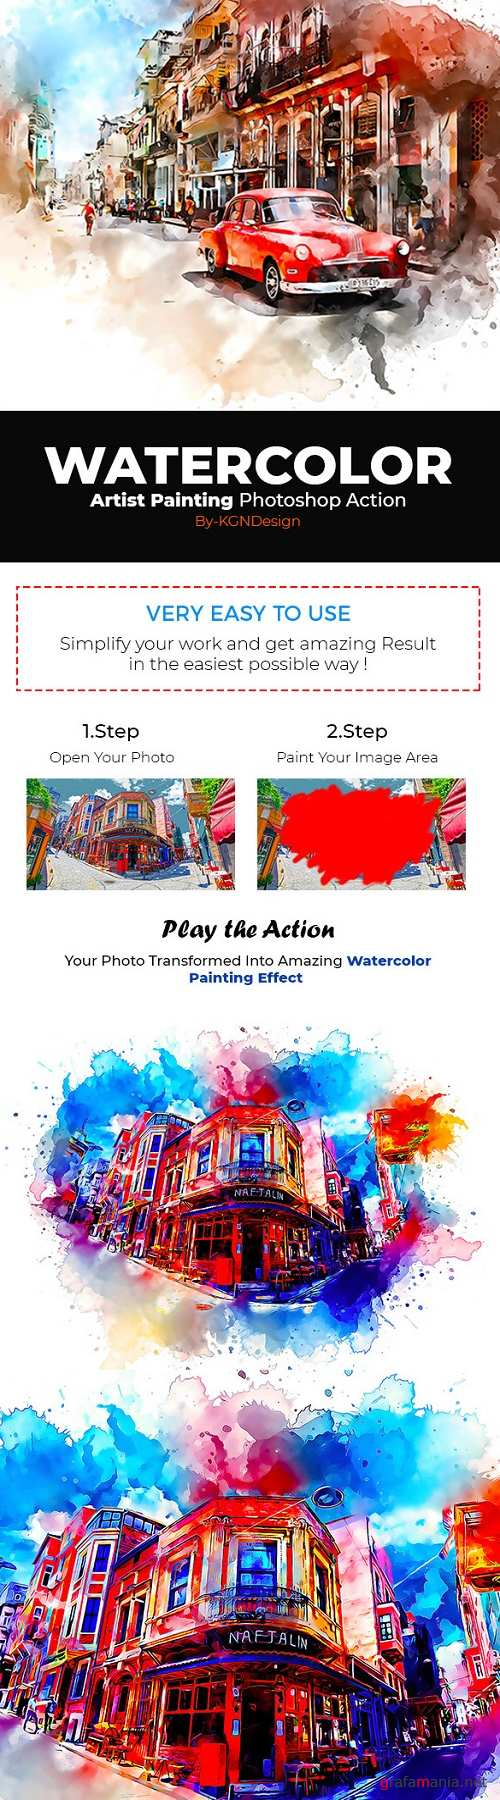 Watercolor Artist Painting Photoshop Action 22294640